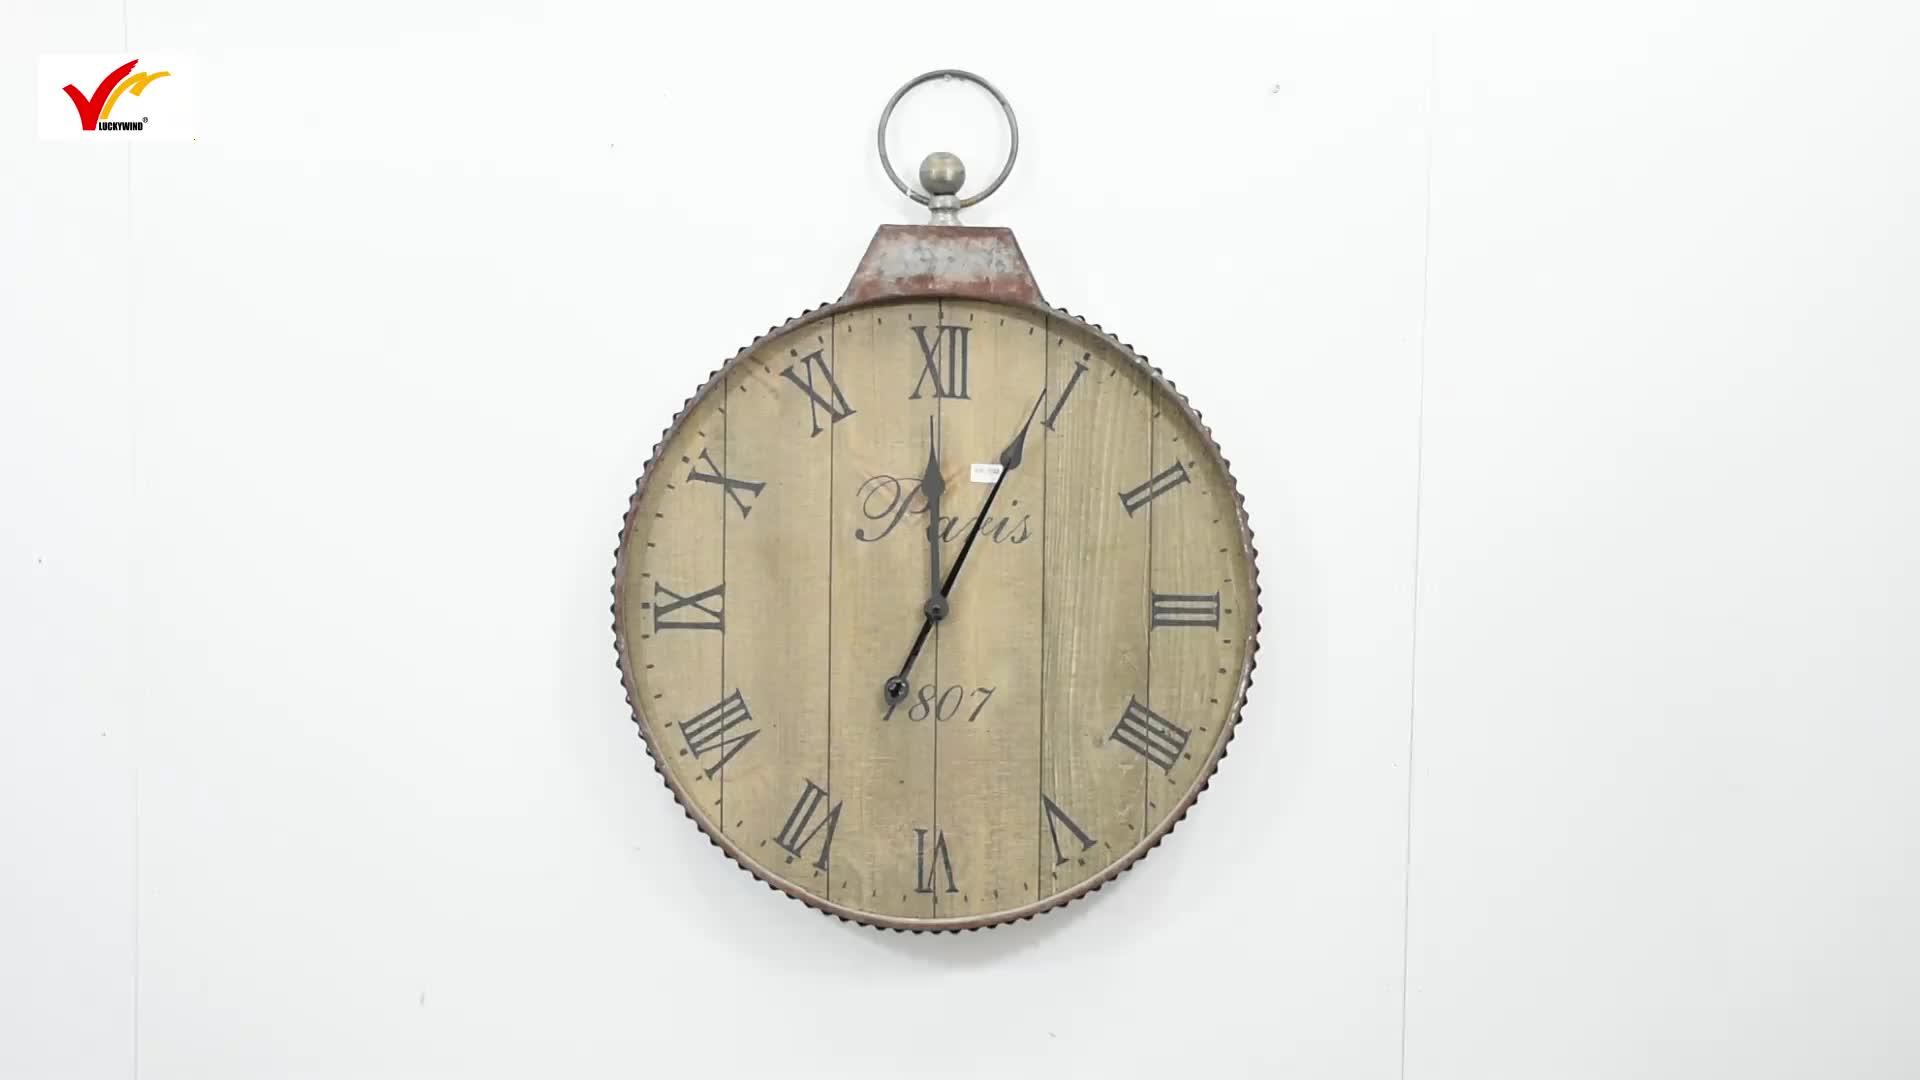 Vintage Antique Farmhouse Style Handmade Home goods Hanging Metal Wooden Decorative Wall Clock